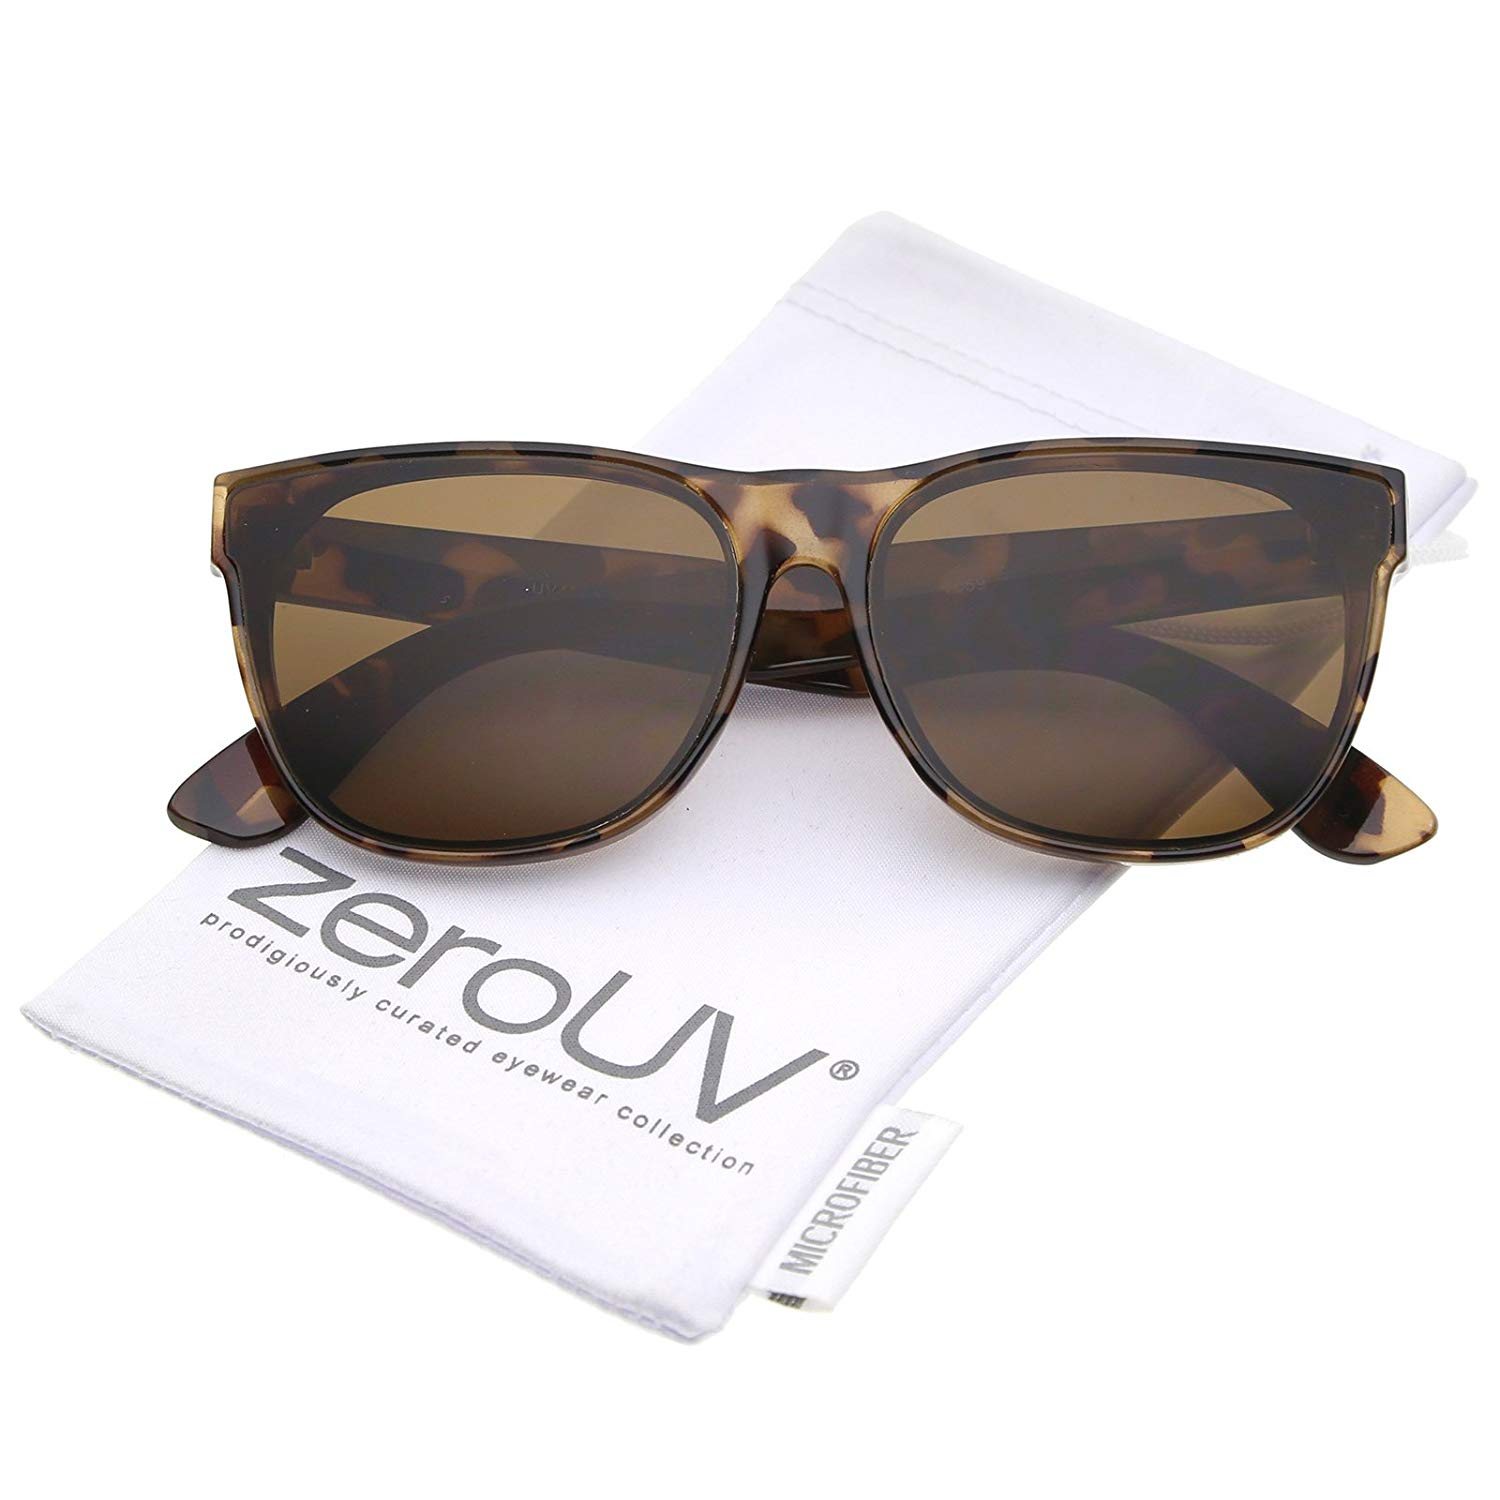 3ad01a078 Get Quotations · Retro Oversize Wide Temple Square Flat Lens Horn Rimmed  Sunglasses 60mm